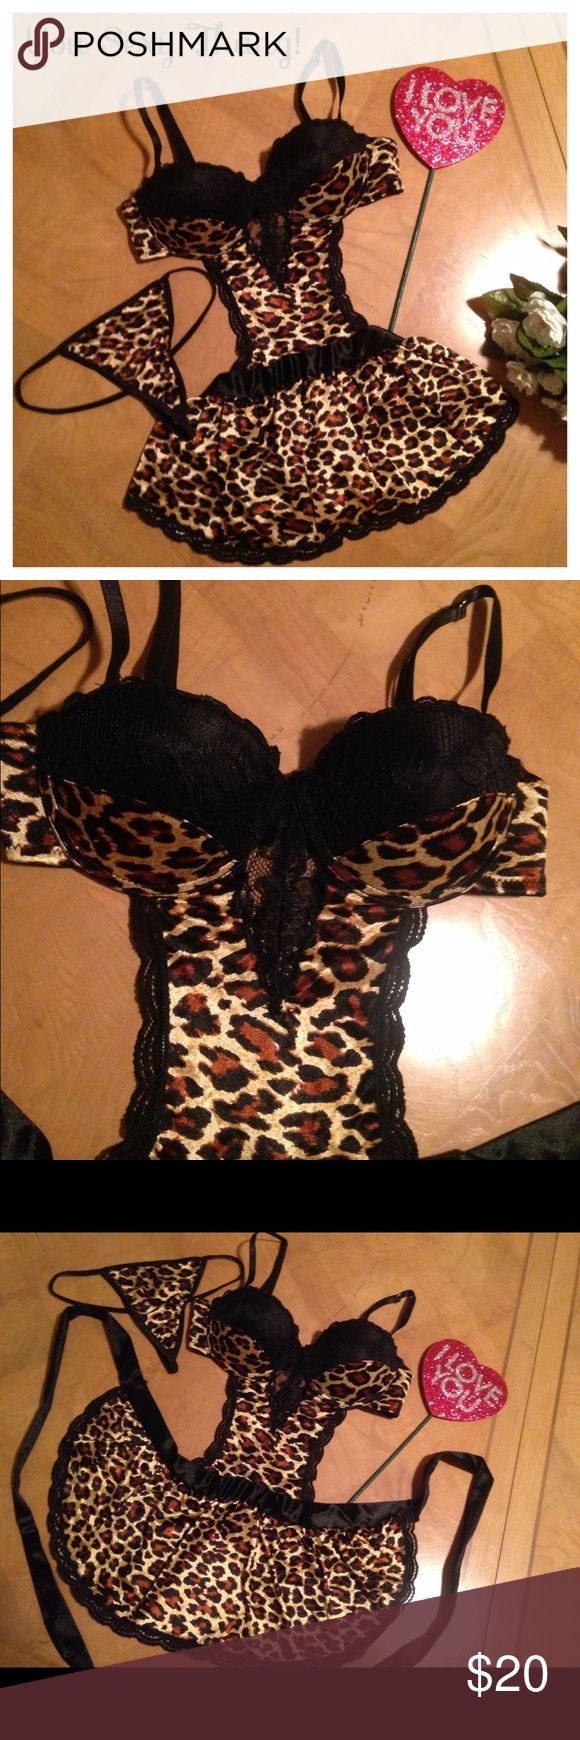 😍Super HOT🔥 Sexy Lingerie Set😍 Super-HOT🔥 Animal print with Black sexy lace & black satiny bodice/ties.😍 Underwire Push-Up for that added va-va-voom!😍 Gold hardware/adjustable straps. Super-Sexy G-String matching panties.❤️Brand New/Never worn/Never tried on! 😻NEW LISTING😻‼️ Passion Forever Intimates & Sleepwear